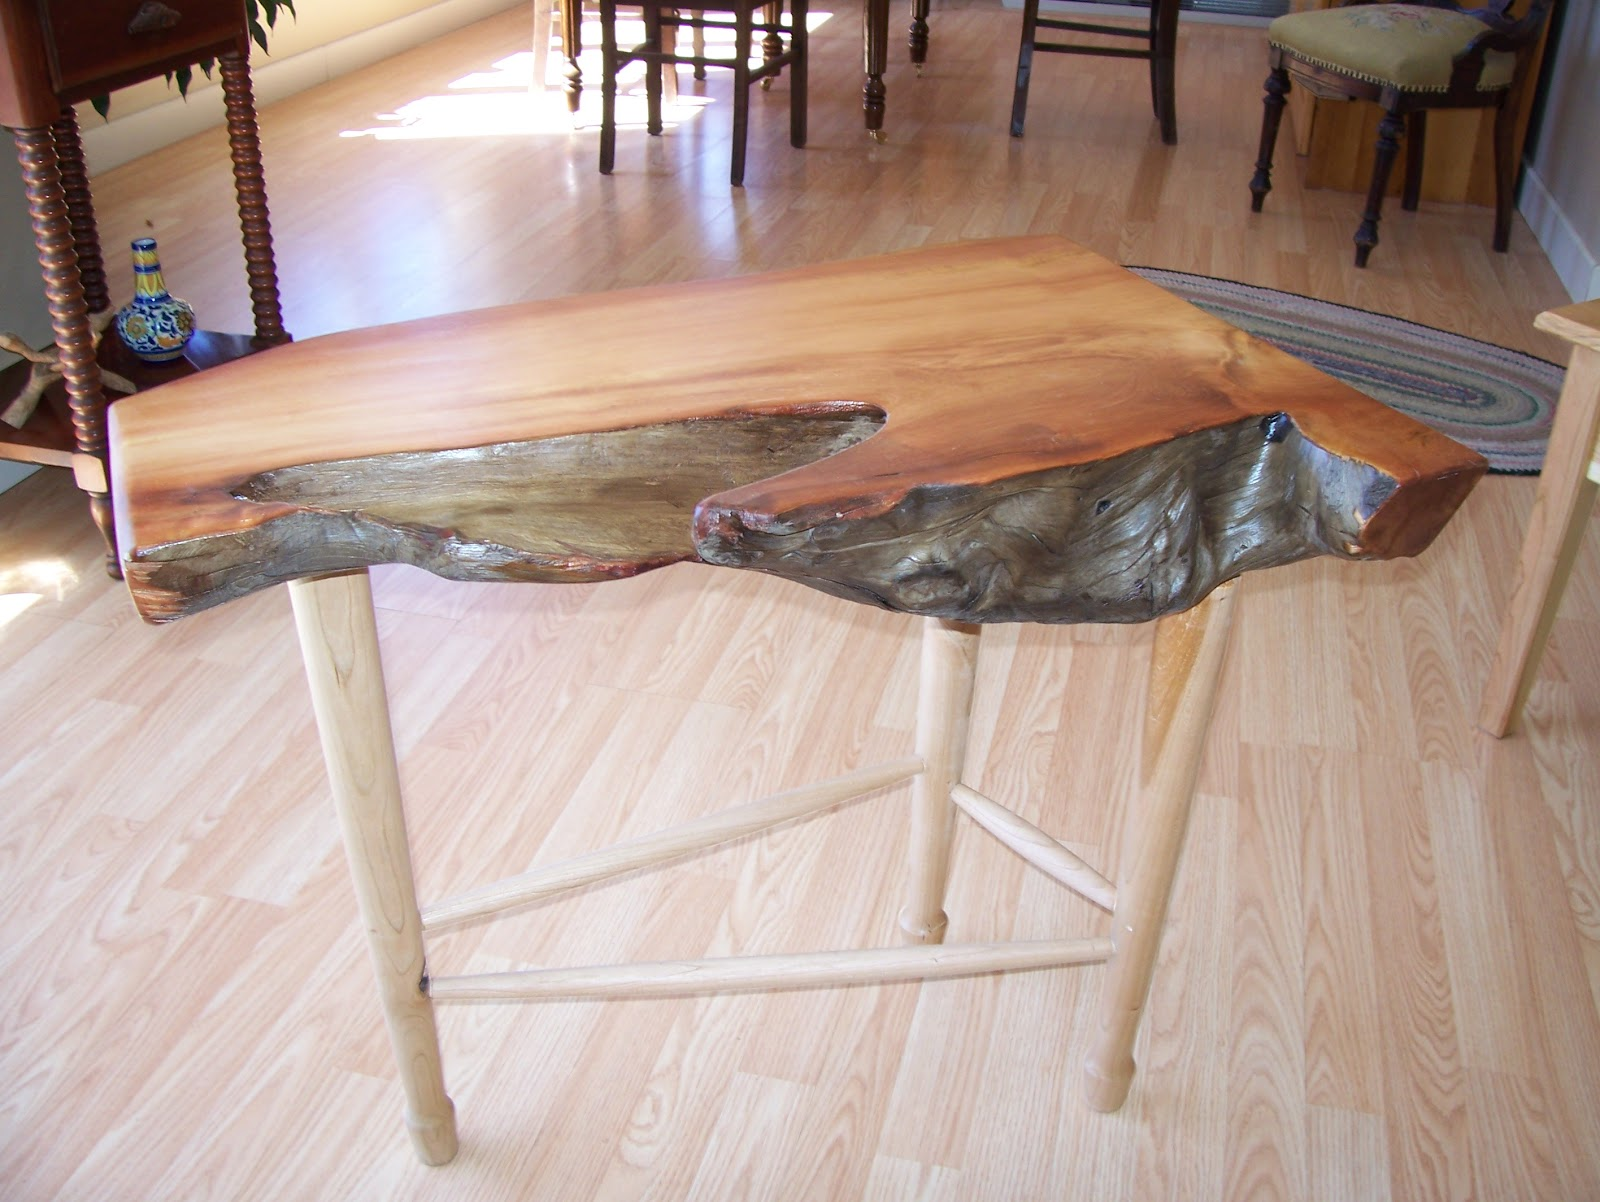 Peter ripple custom furniture driftwood tables for Driftwood tables handmade